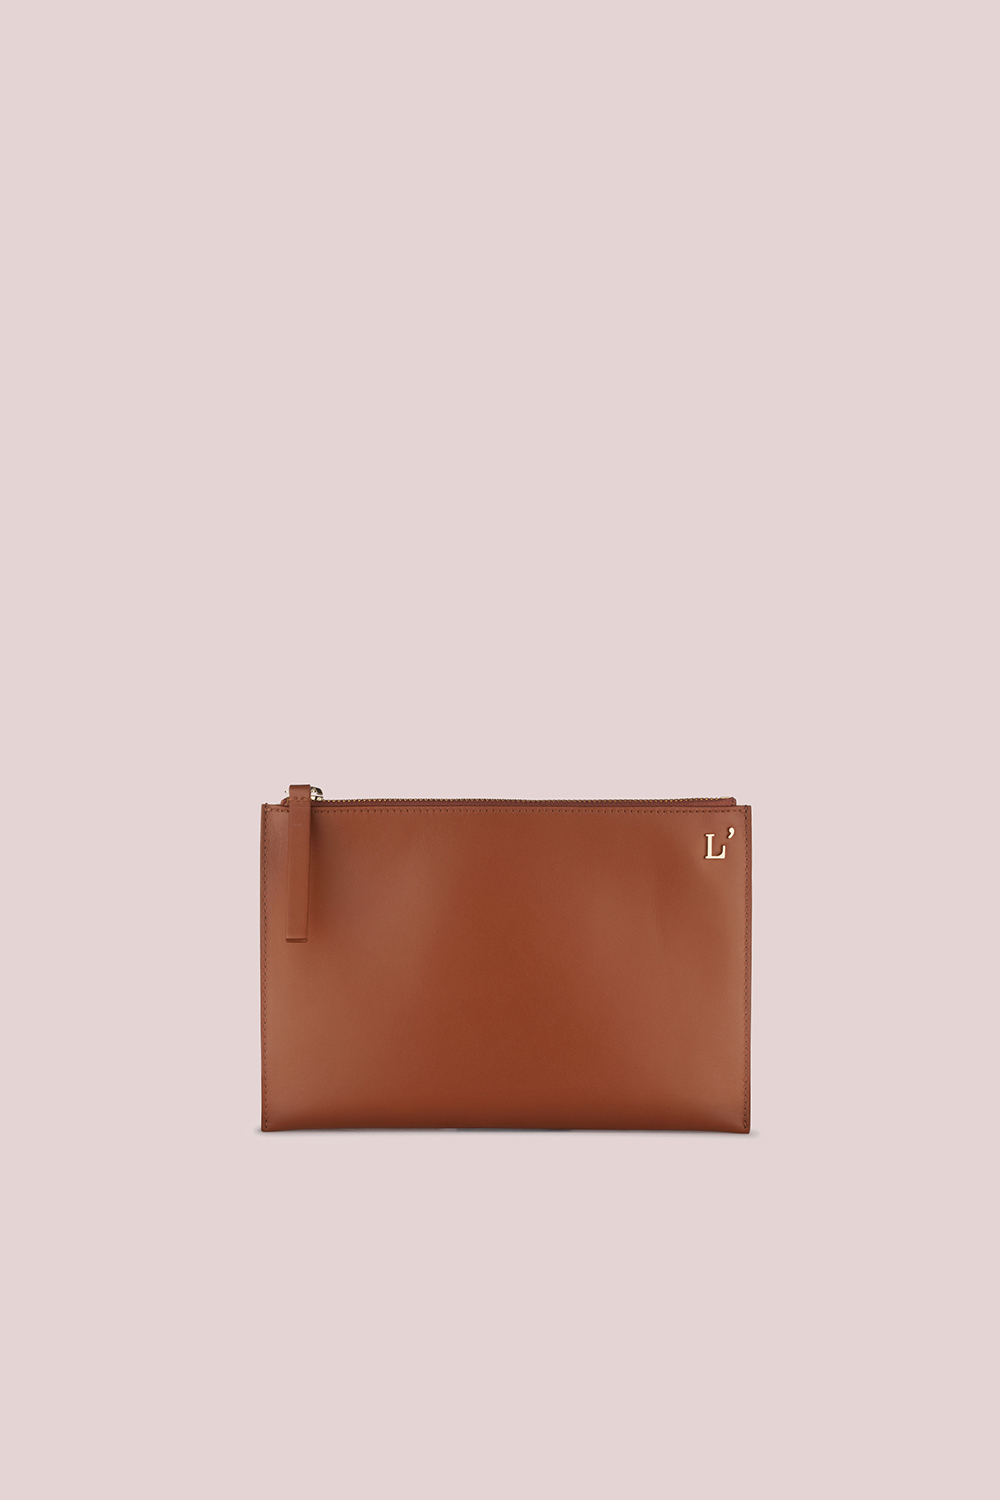 POUCH IN TAN LEATHER